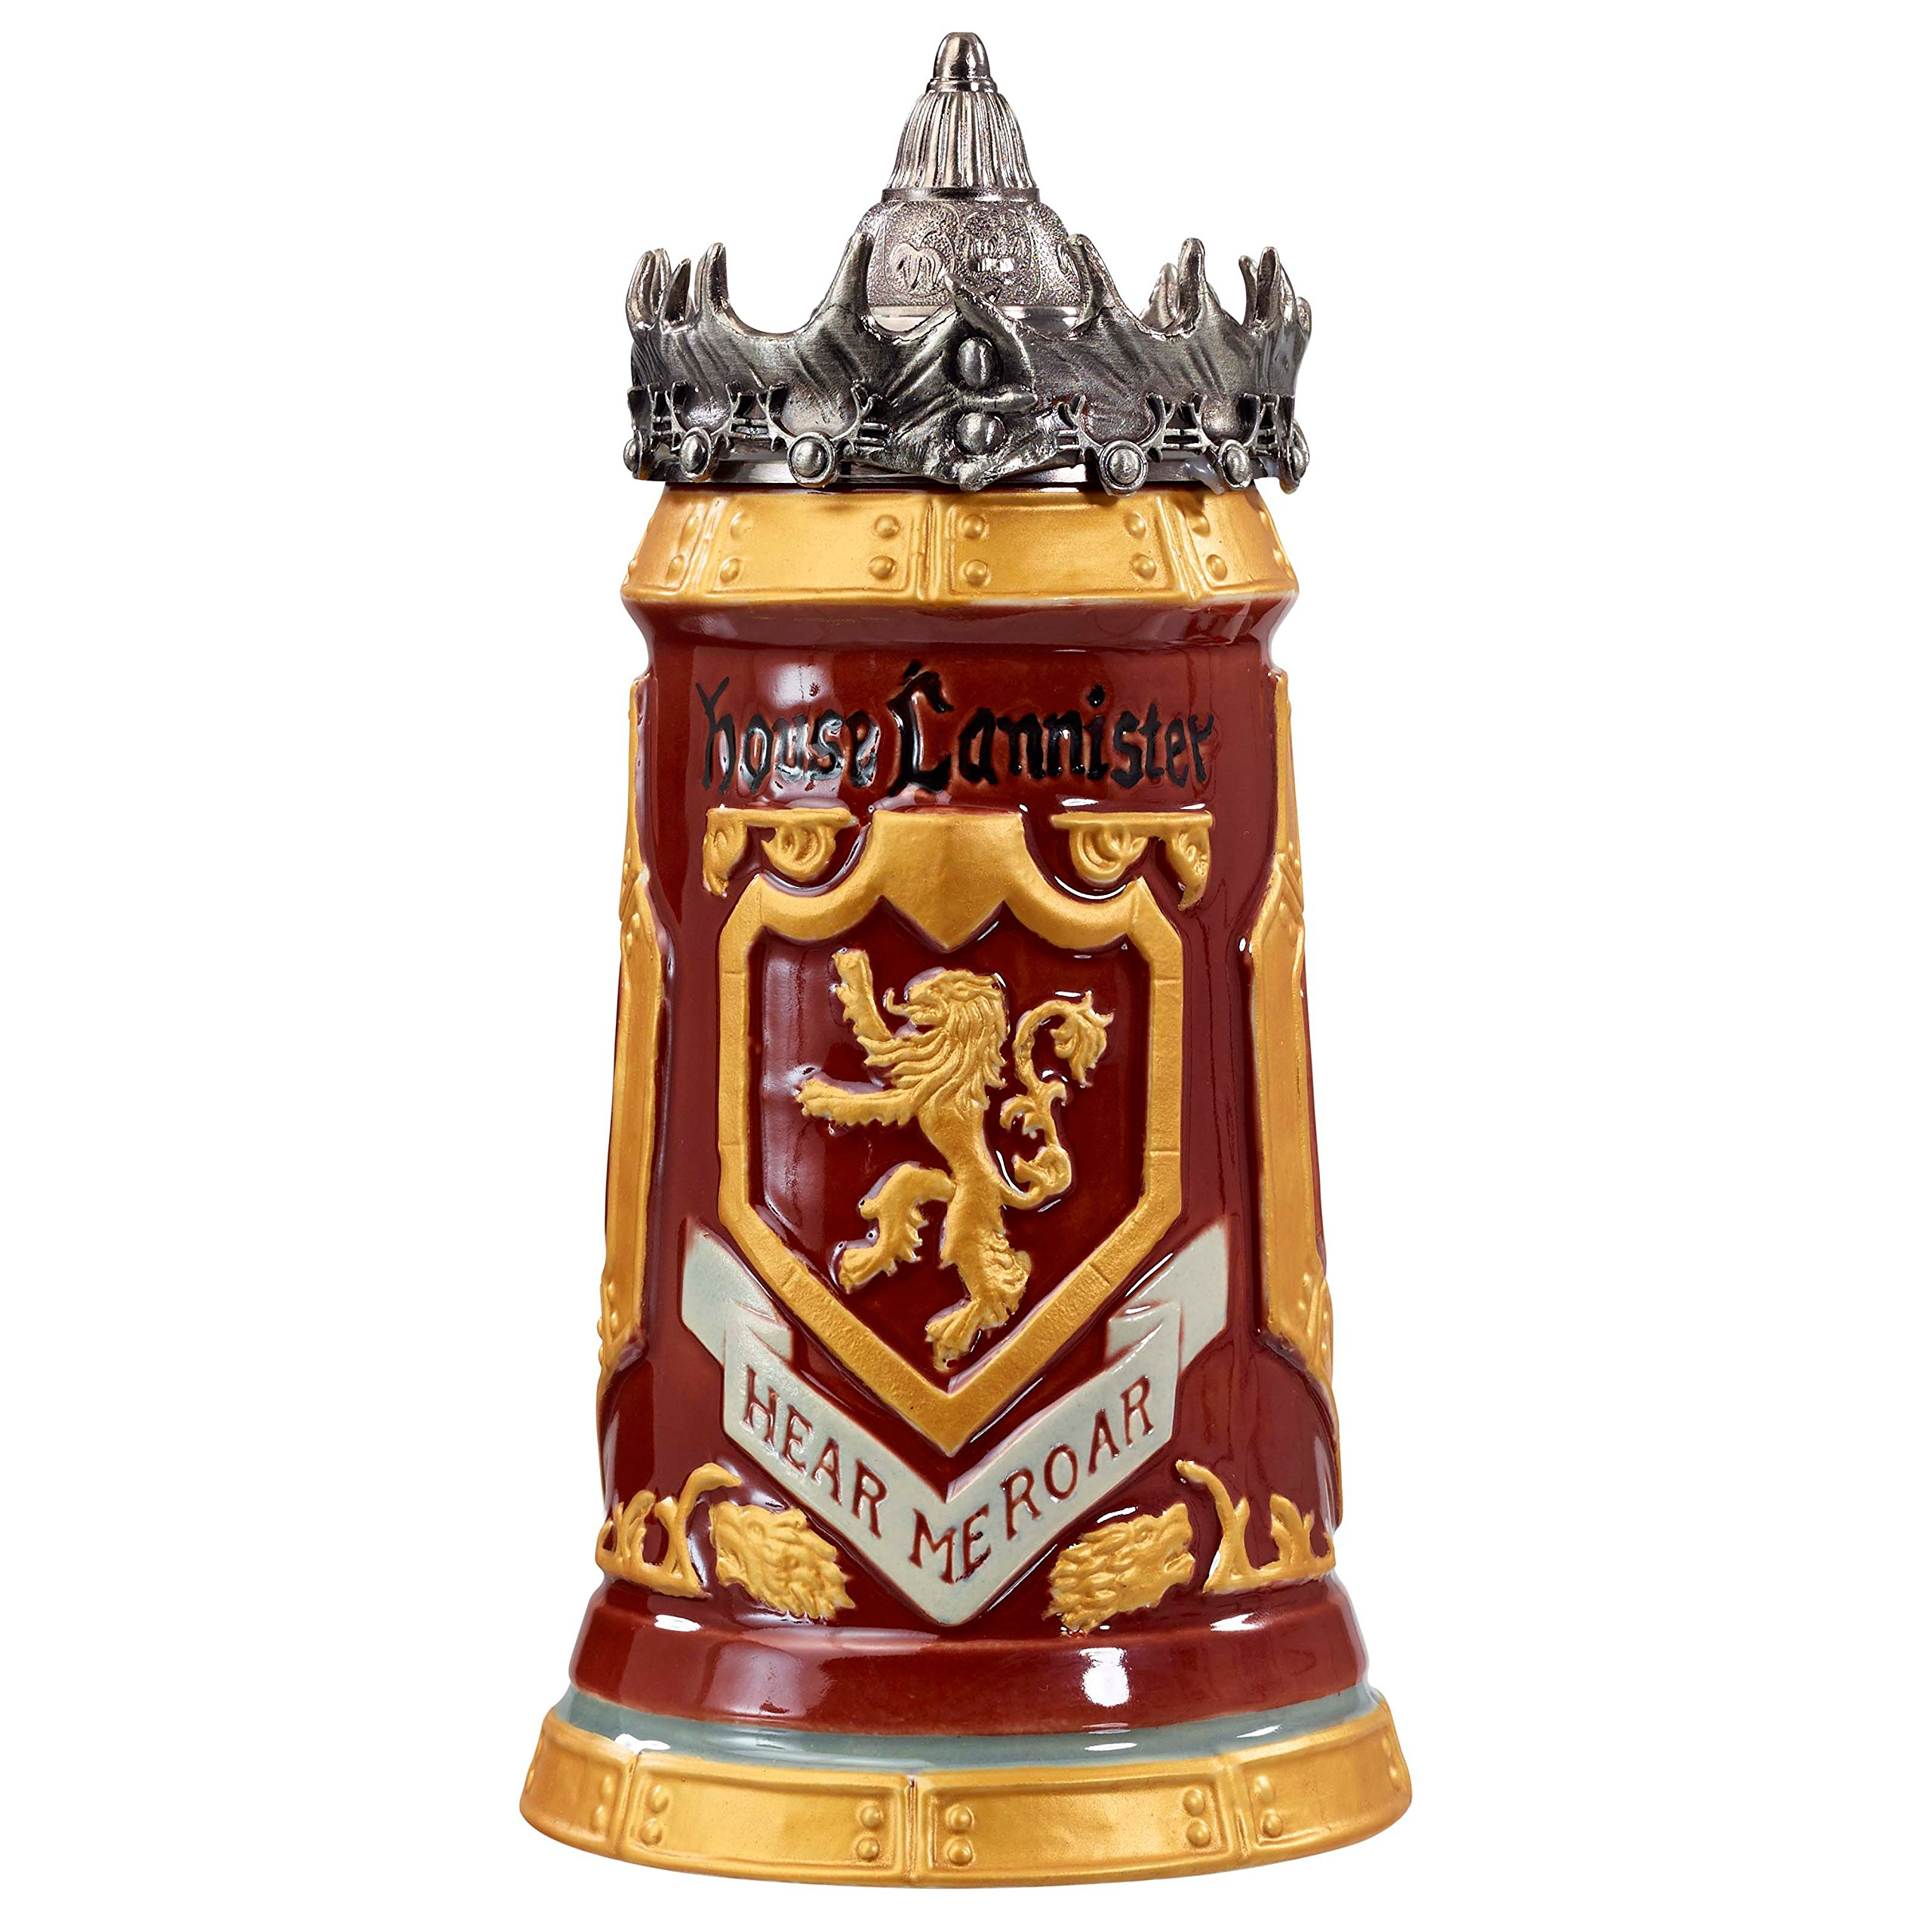 Game of Thrones House Lannister Stein - 22 Ounces Ceramic Base with Pewter Baratheon Crown Top